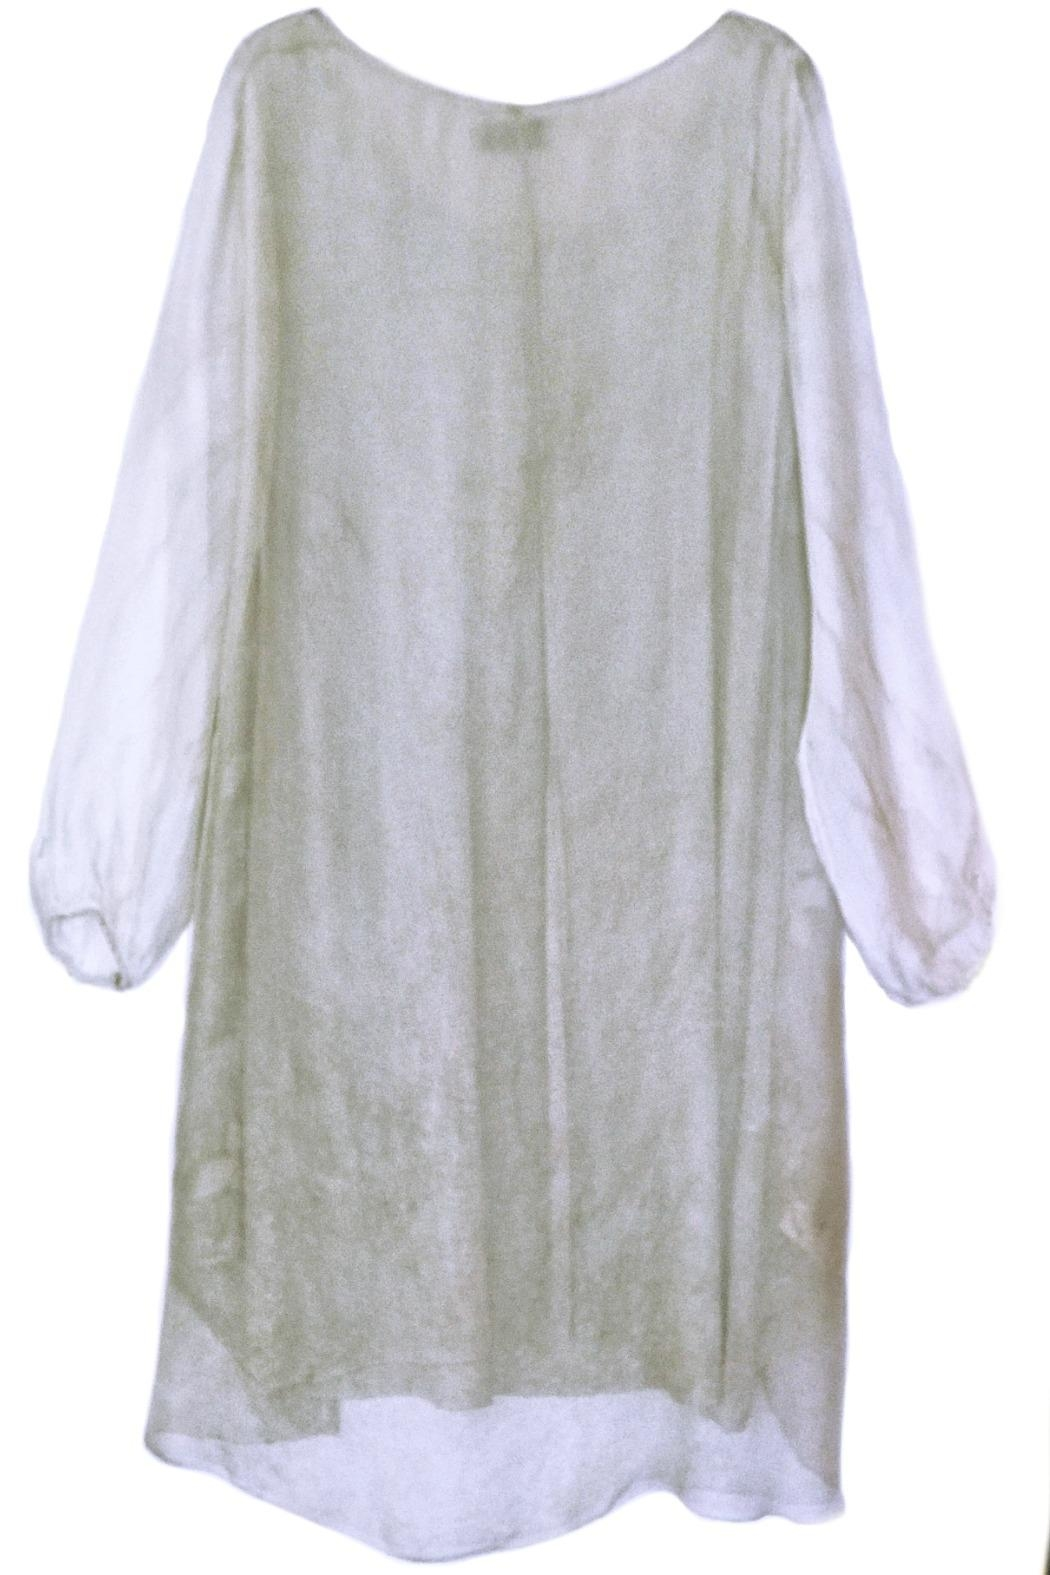 ANTONELLO SERIO Beige Floral Embroidery - Front Full Image